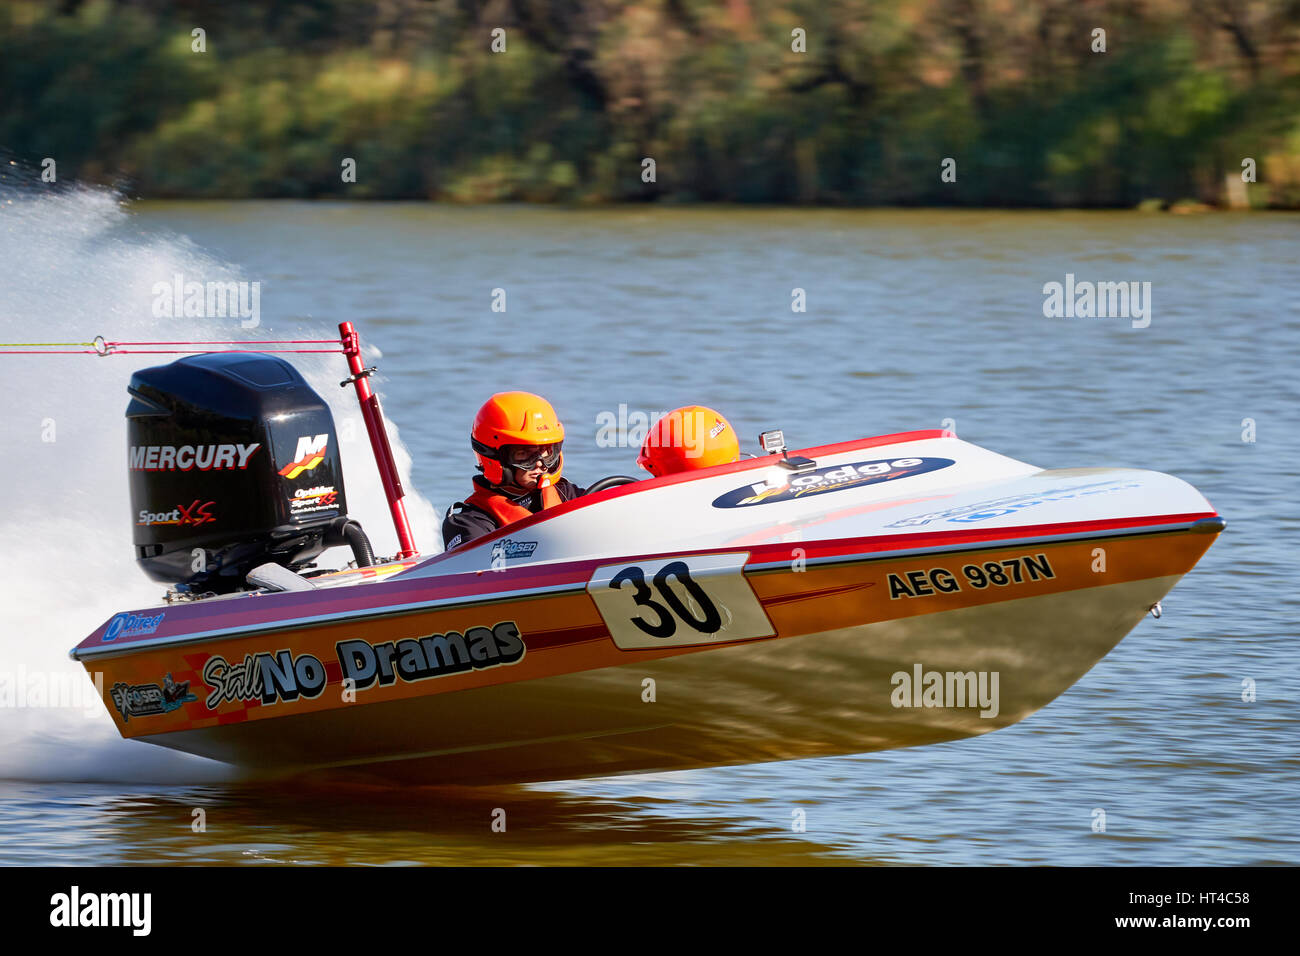 Still No Dramas, competing in the 2017 Ted Hurley Memorial Classic ski race. Held on the Darling and Murray rivers - Stock Image